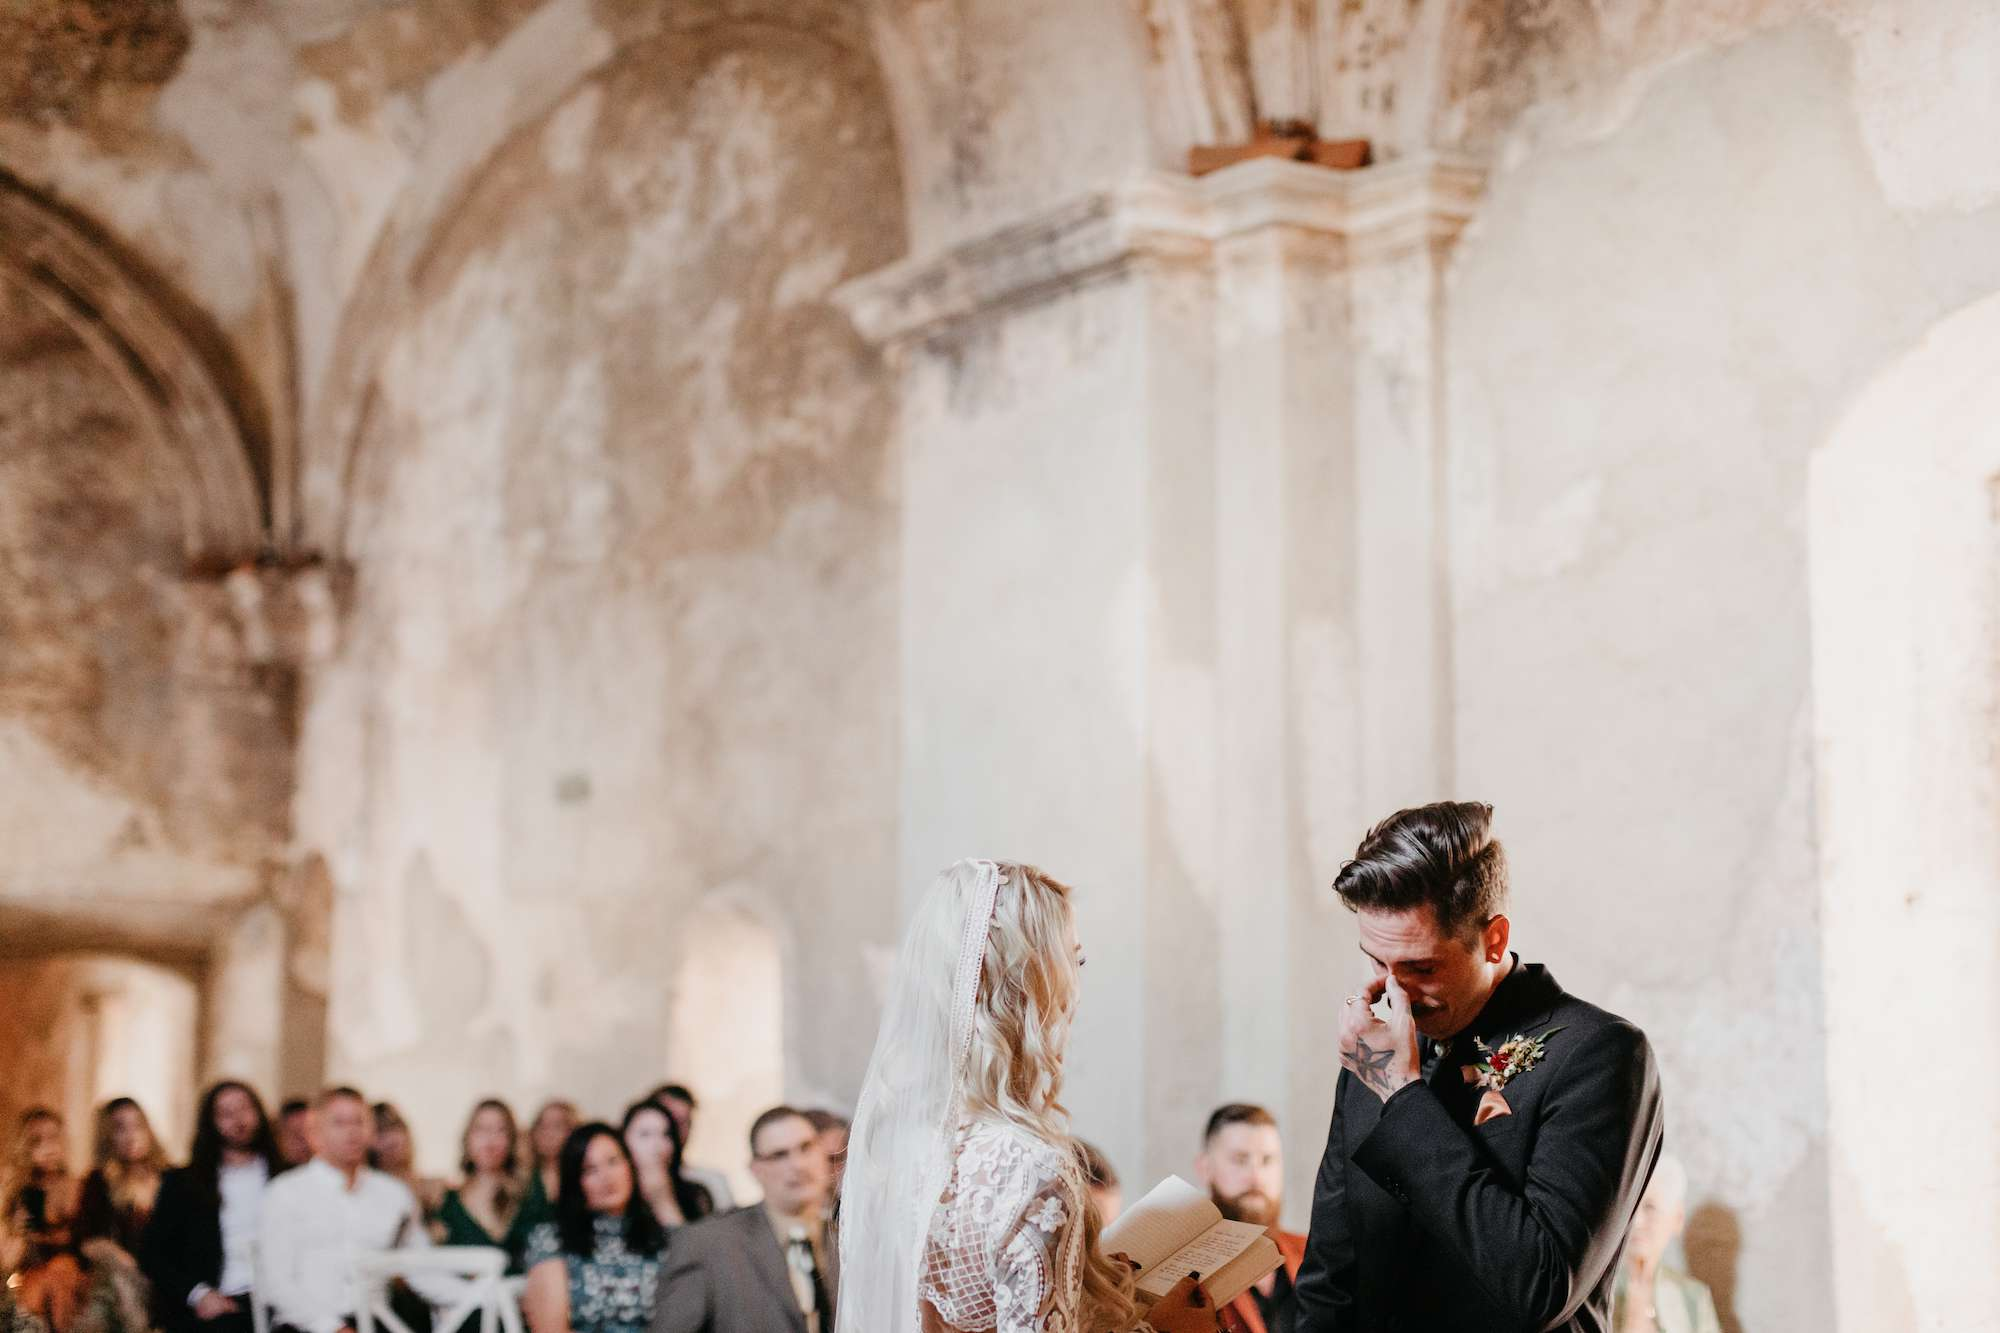 Groom wiping tears at wedding altar with bride